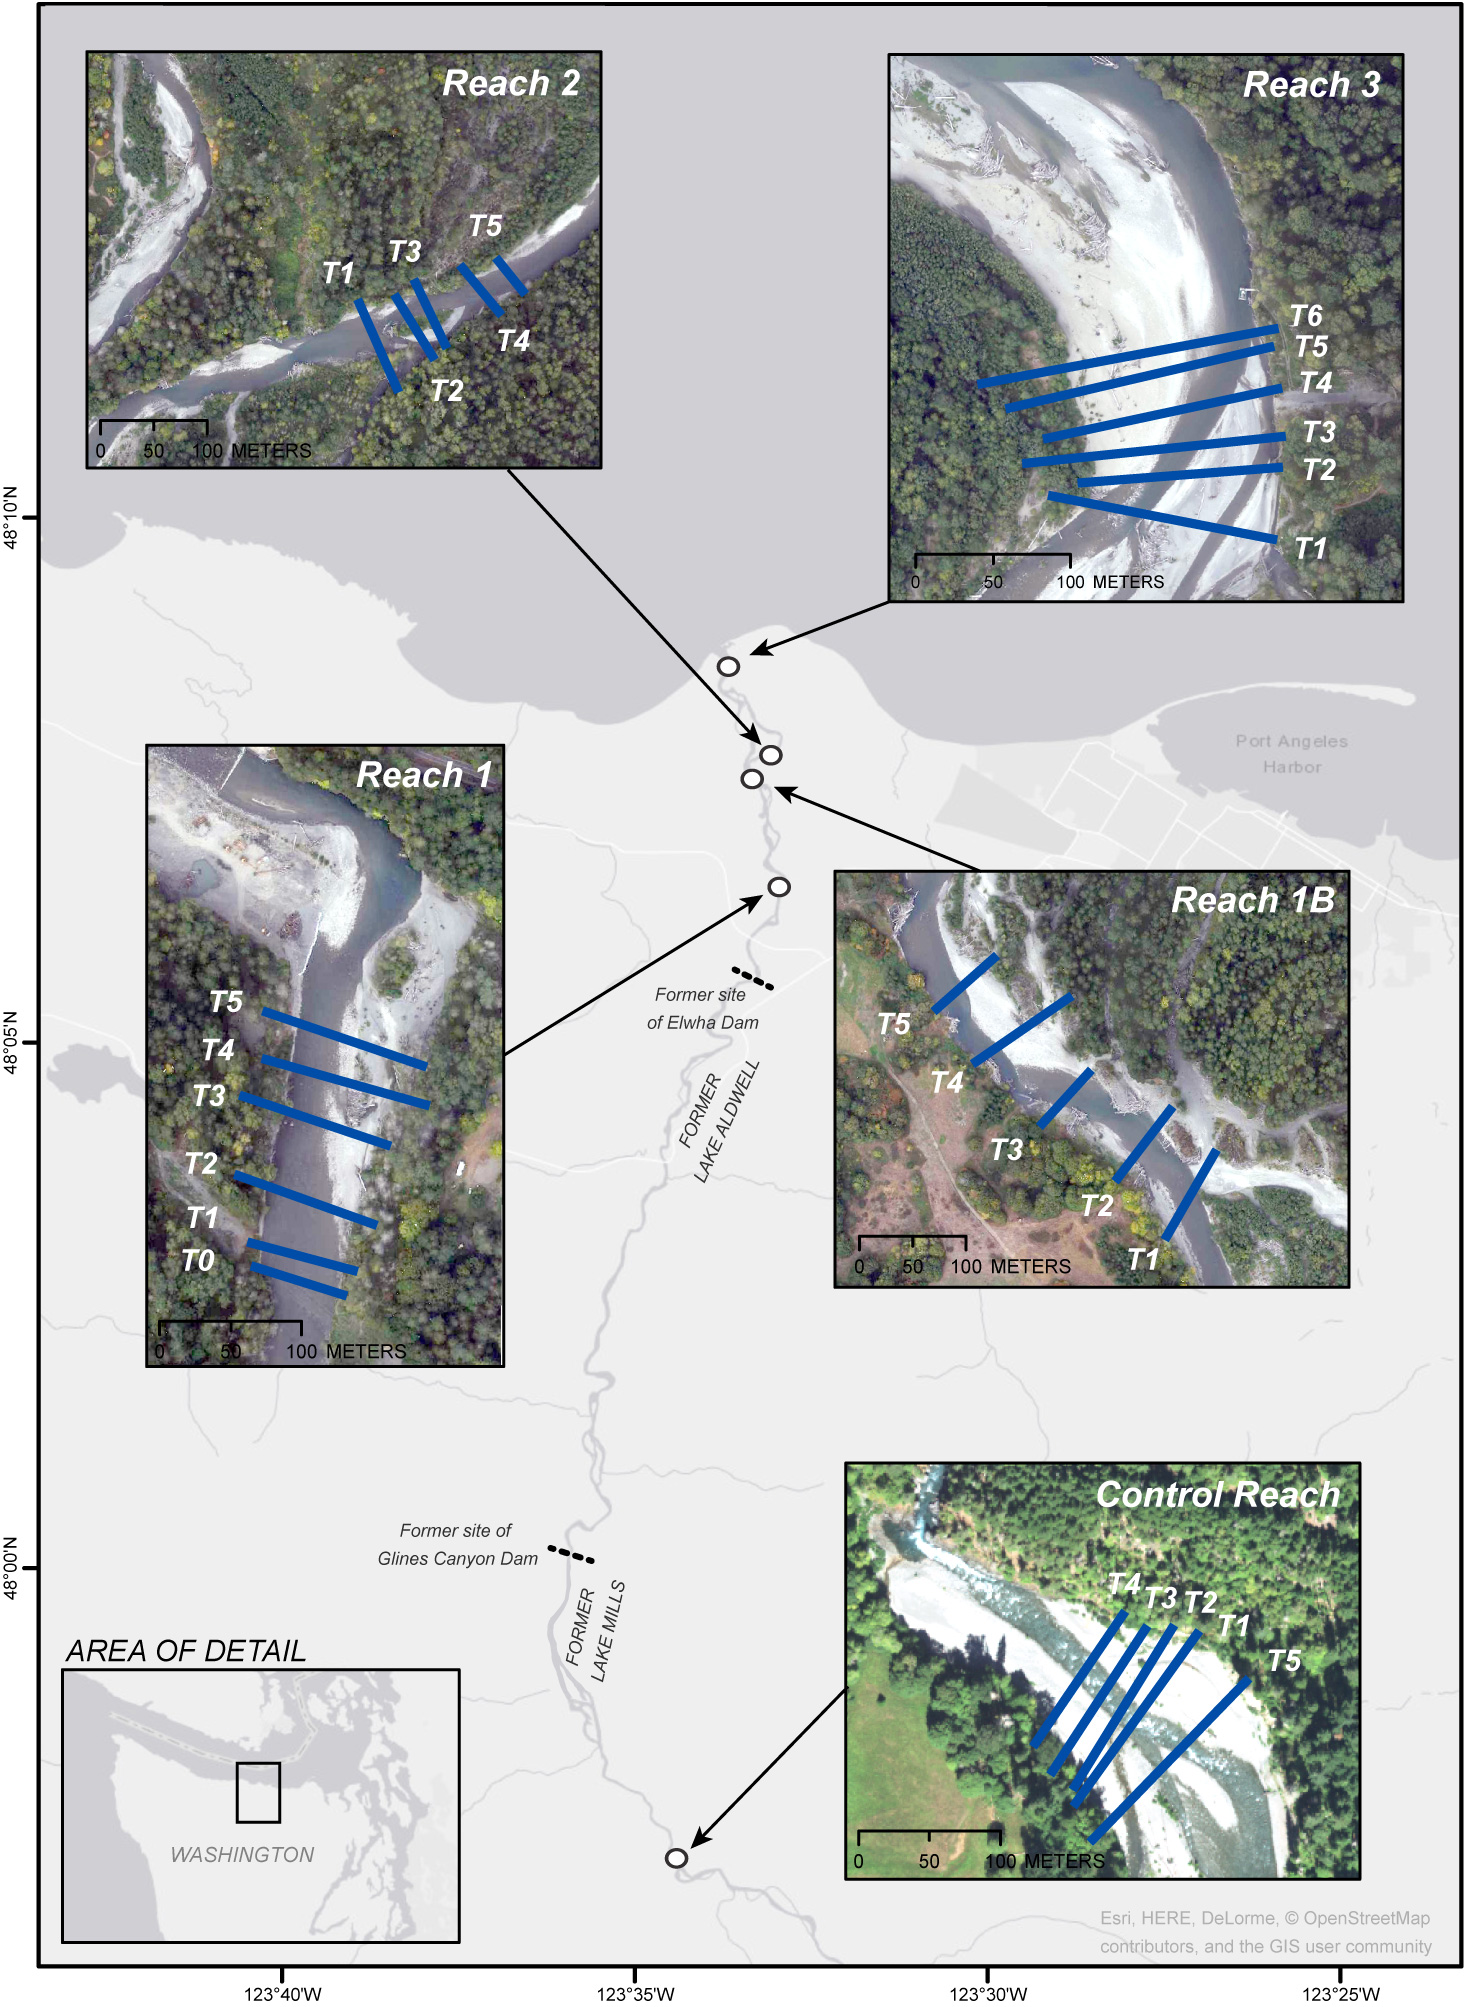 Image map showing locations of study reaches and transects along the Elwha River, Washington